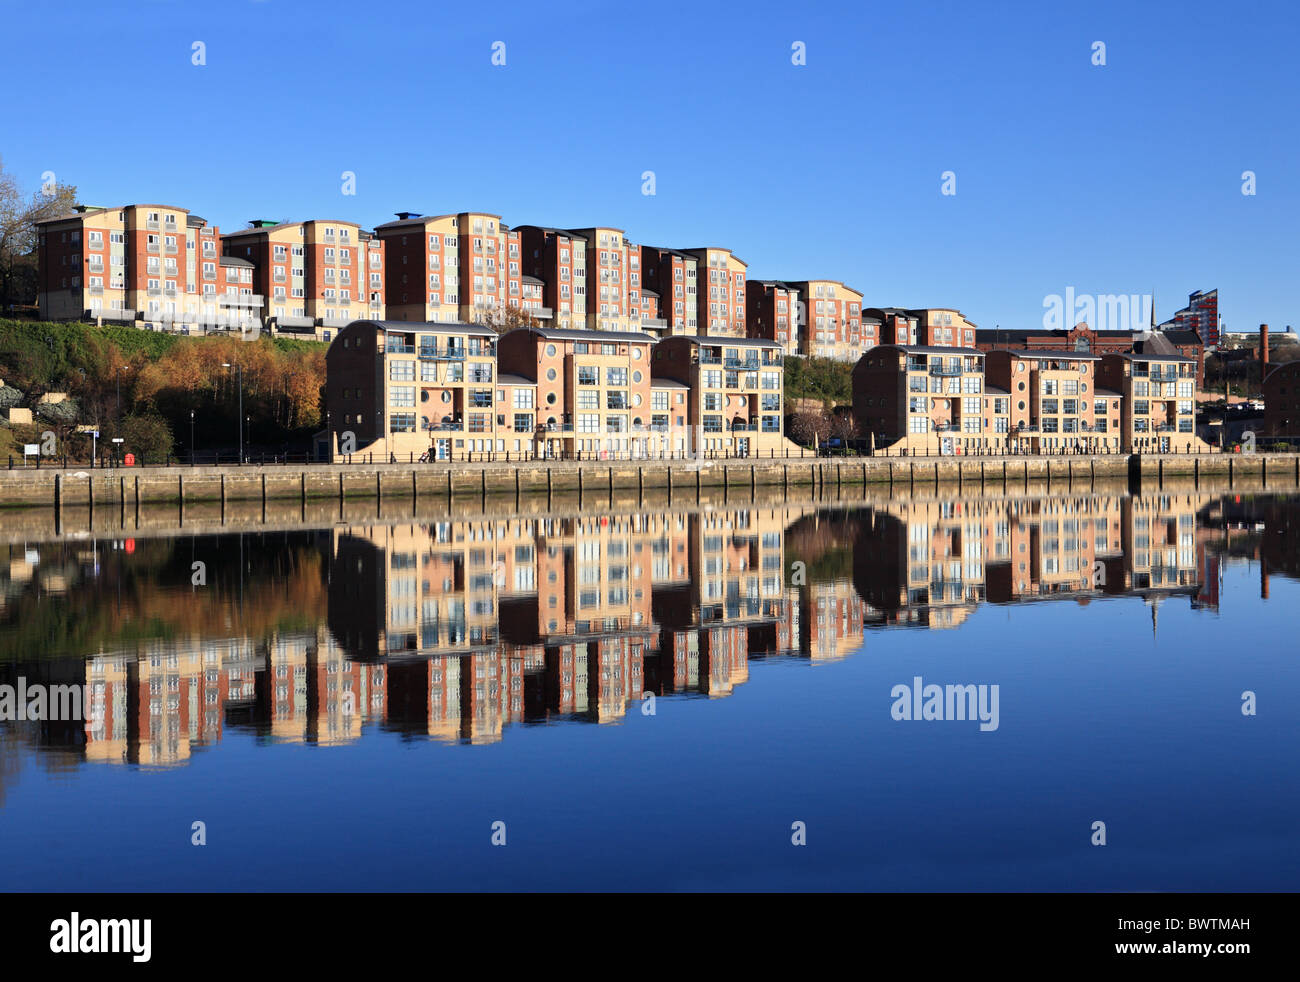 residential-properties-reflected-in-the-